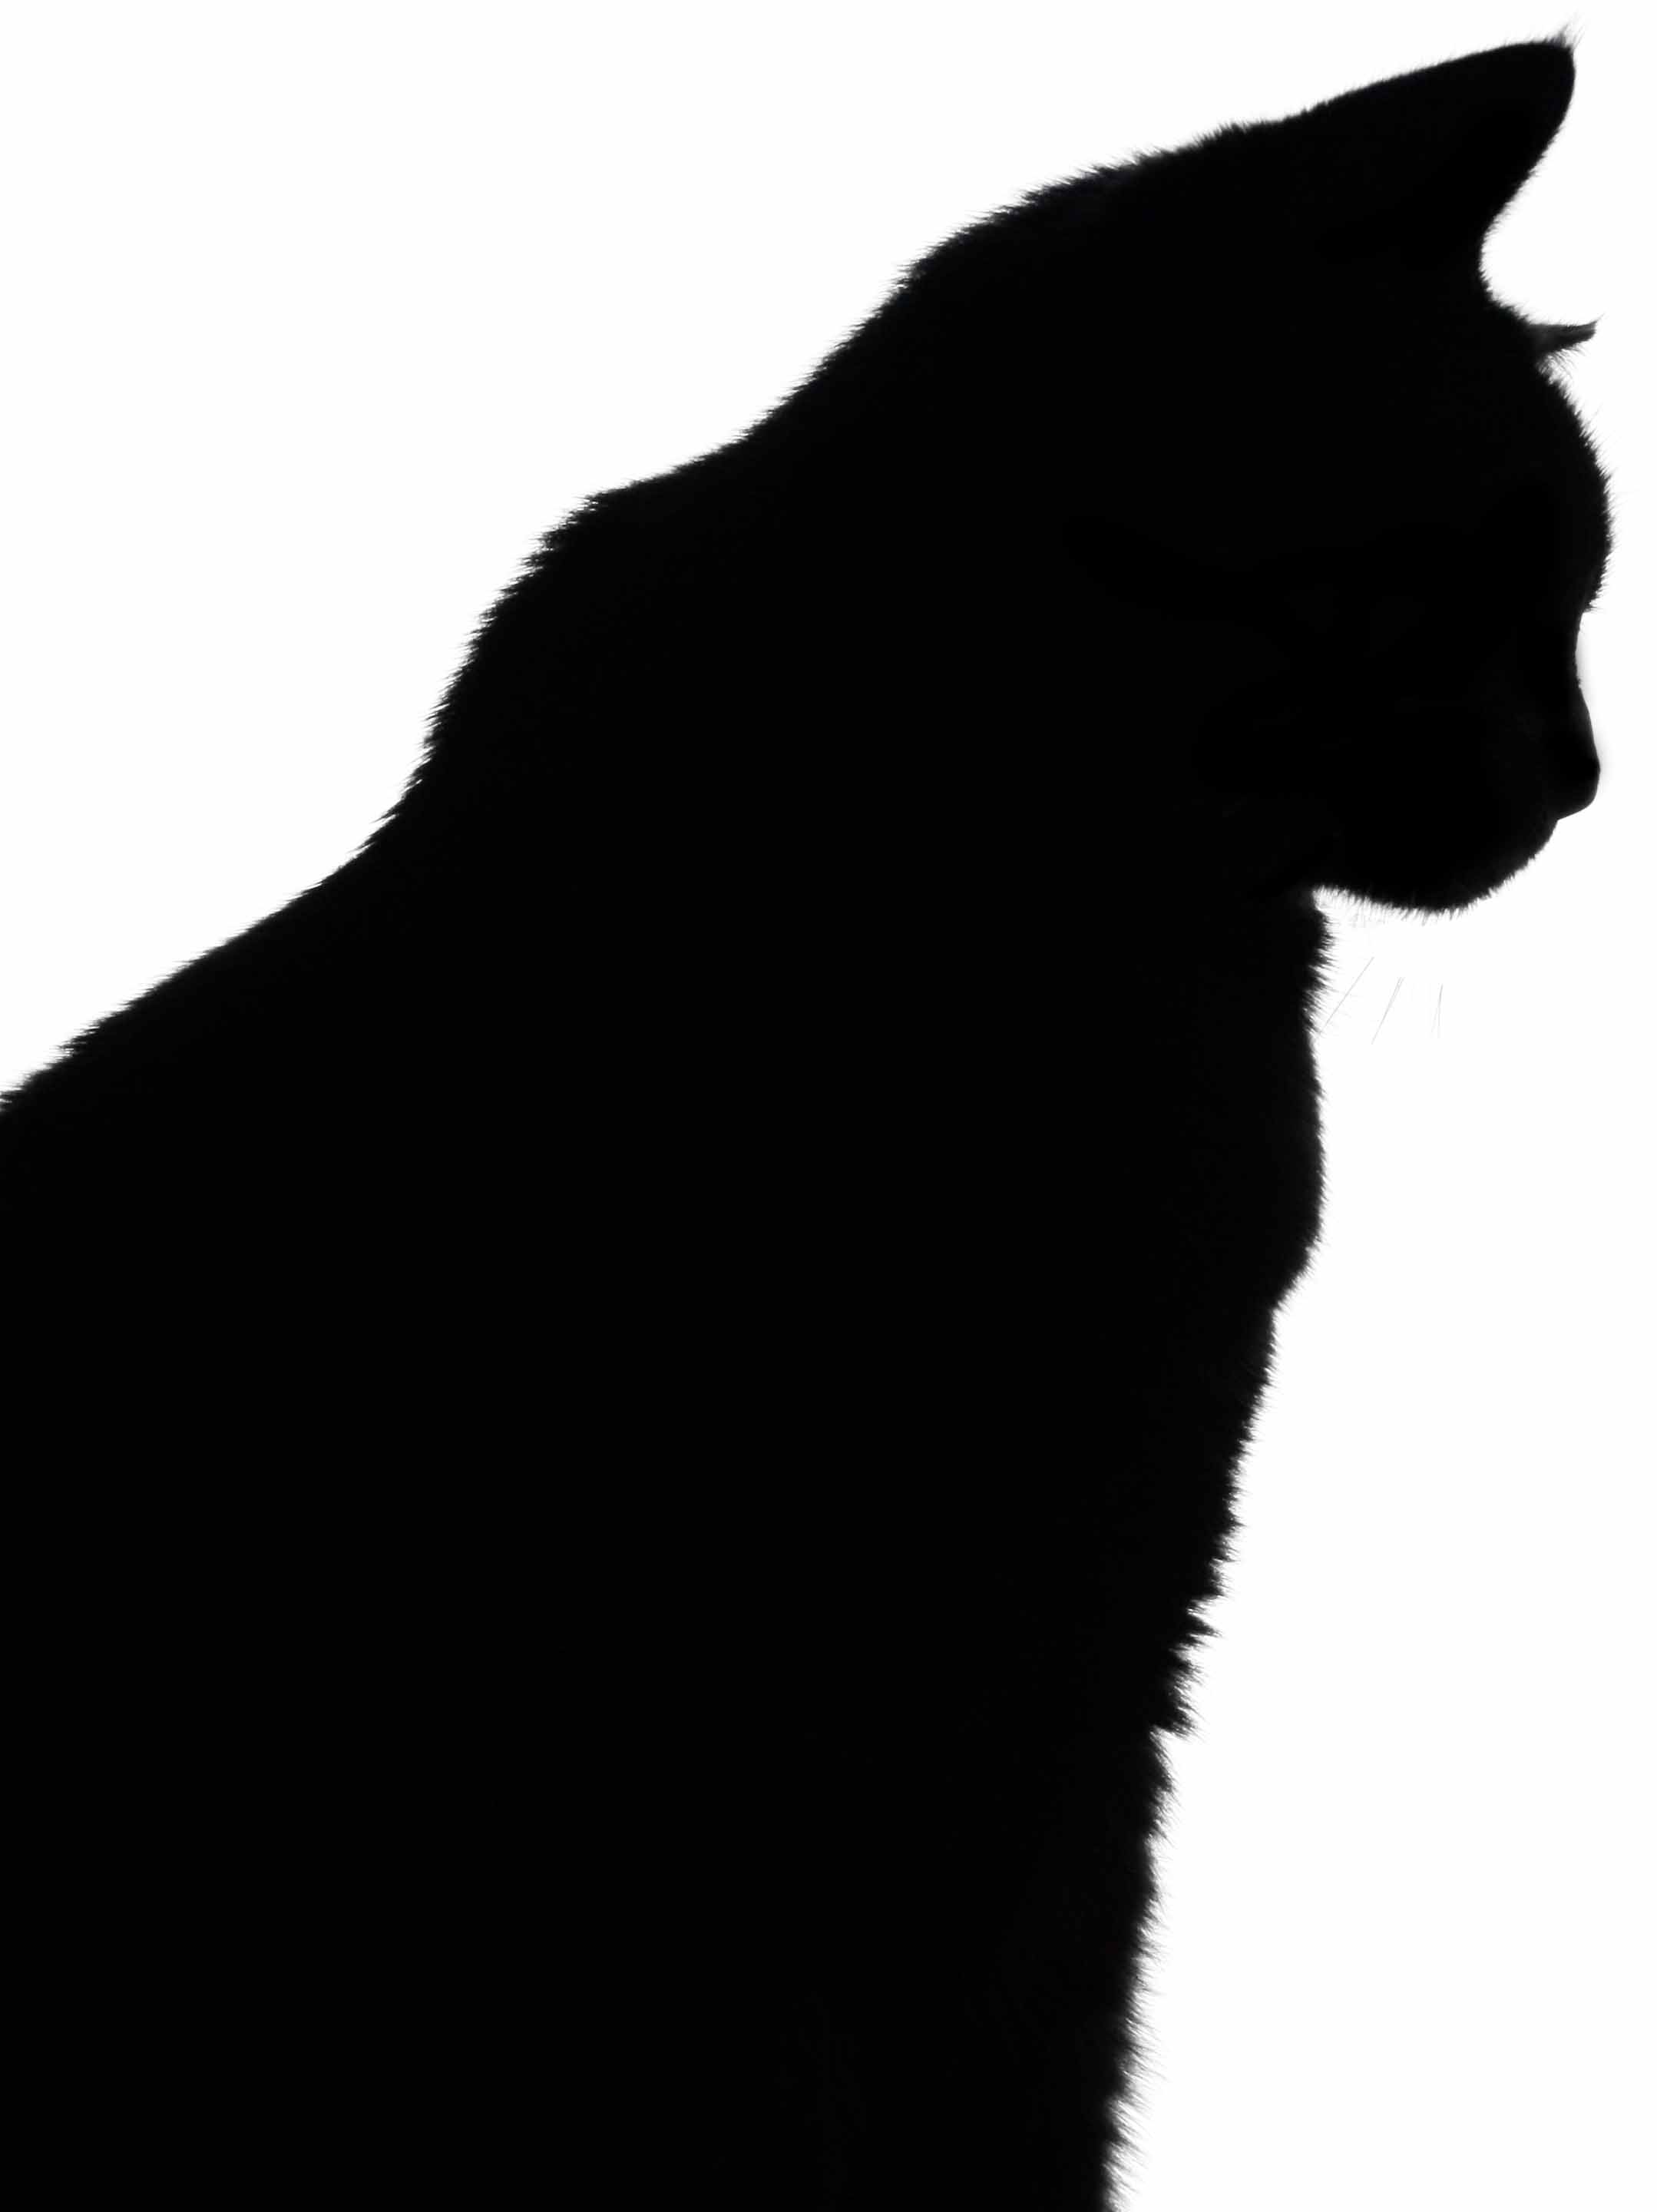 Cat Silhouette Pictures - Cliparts.co